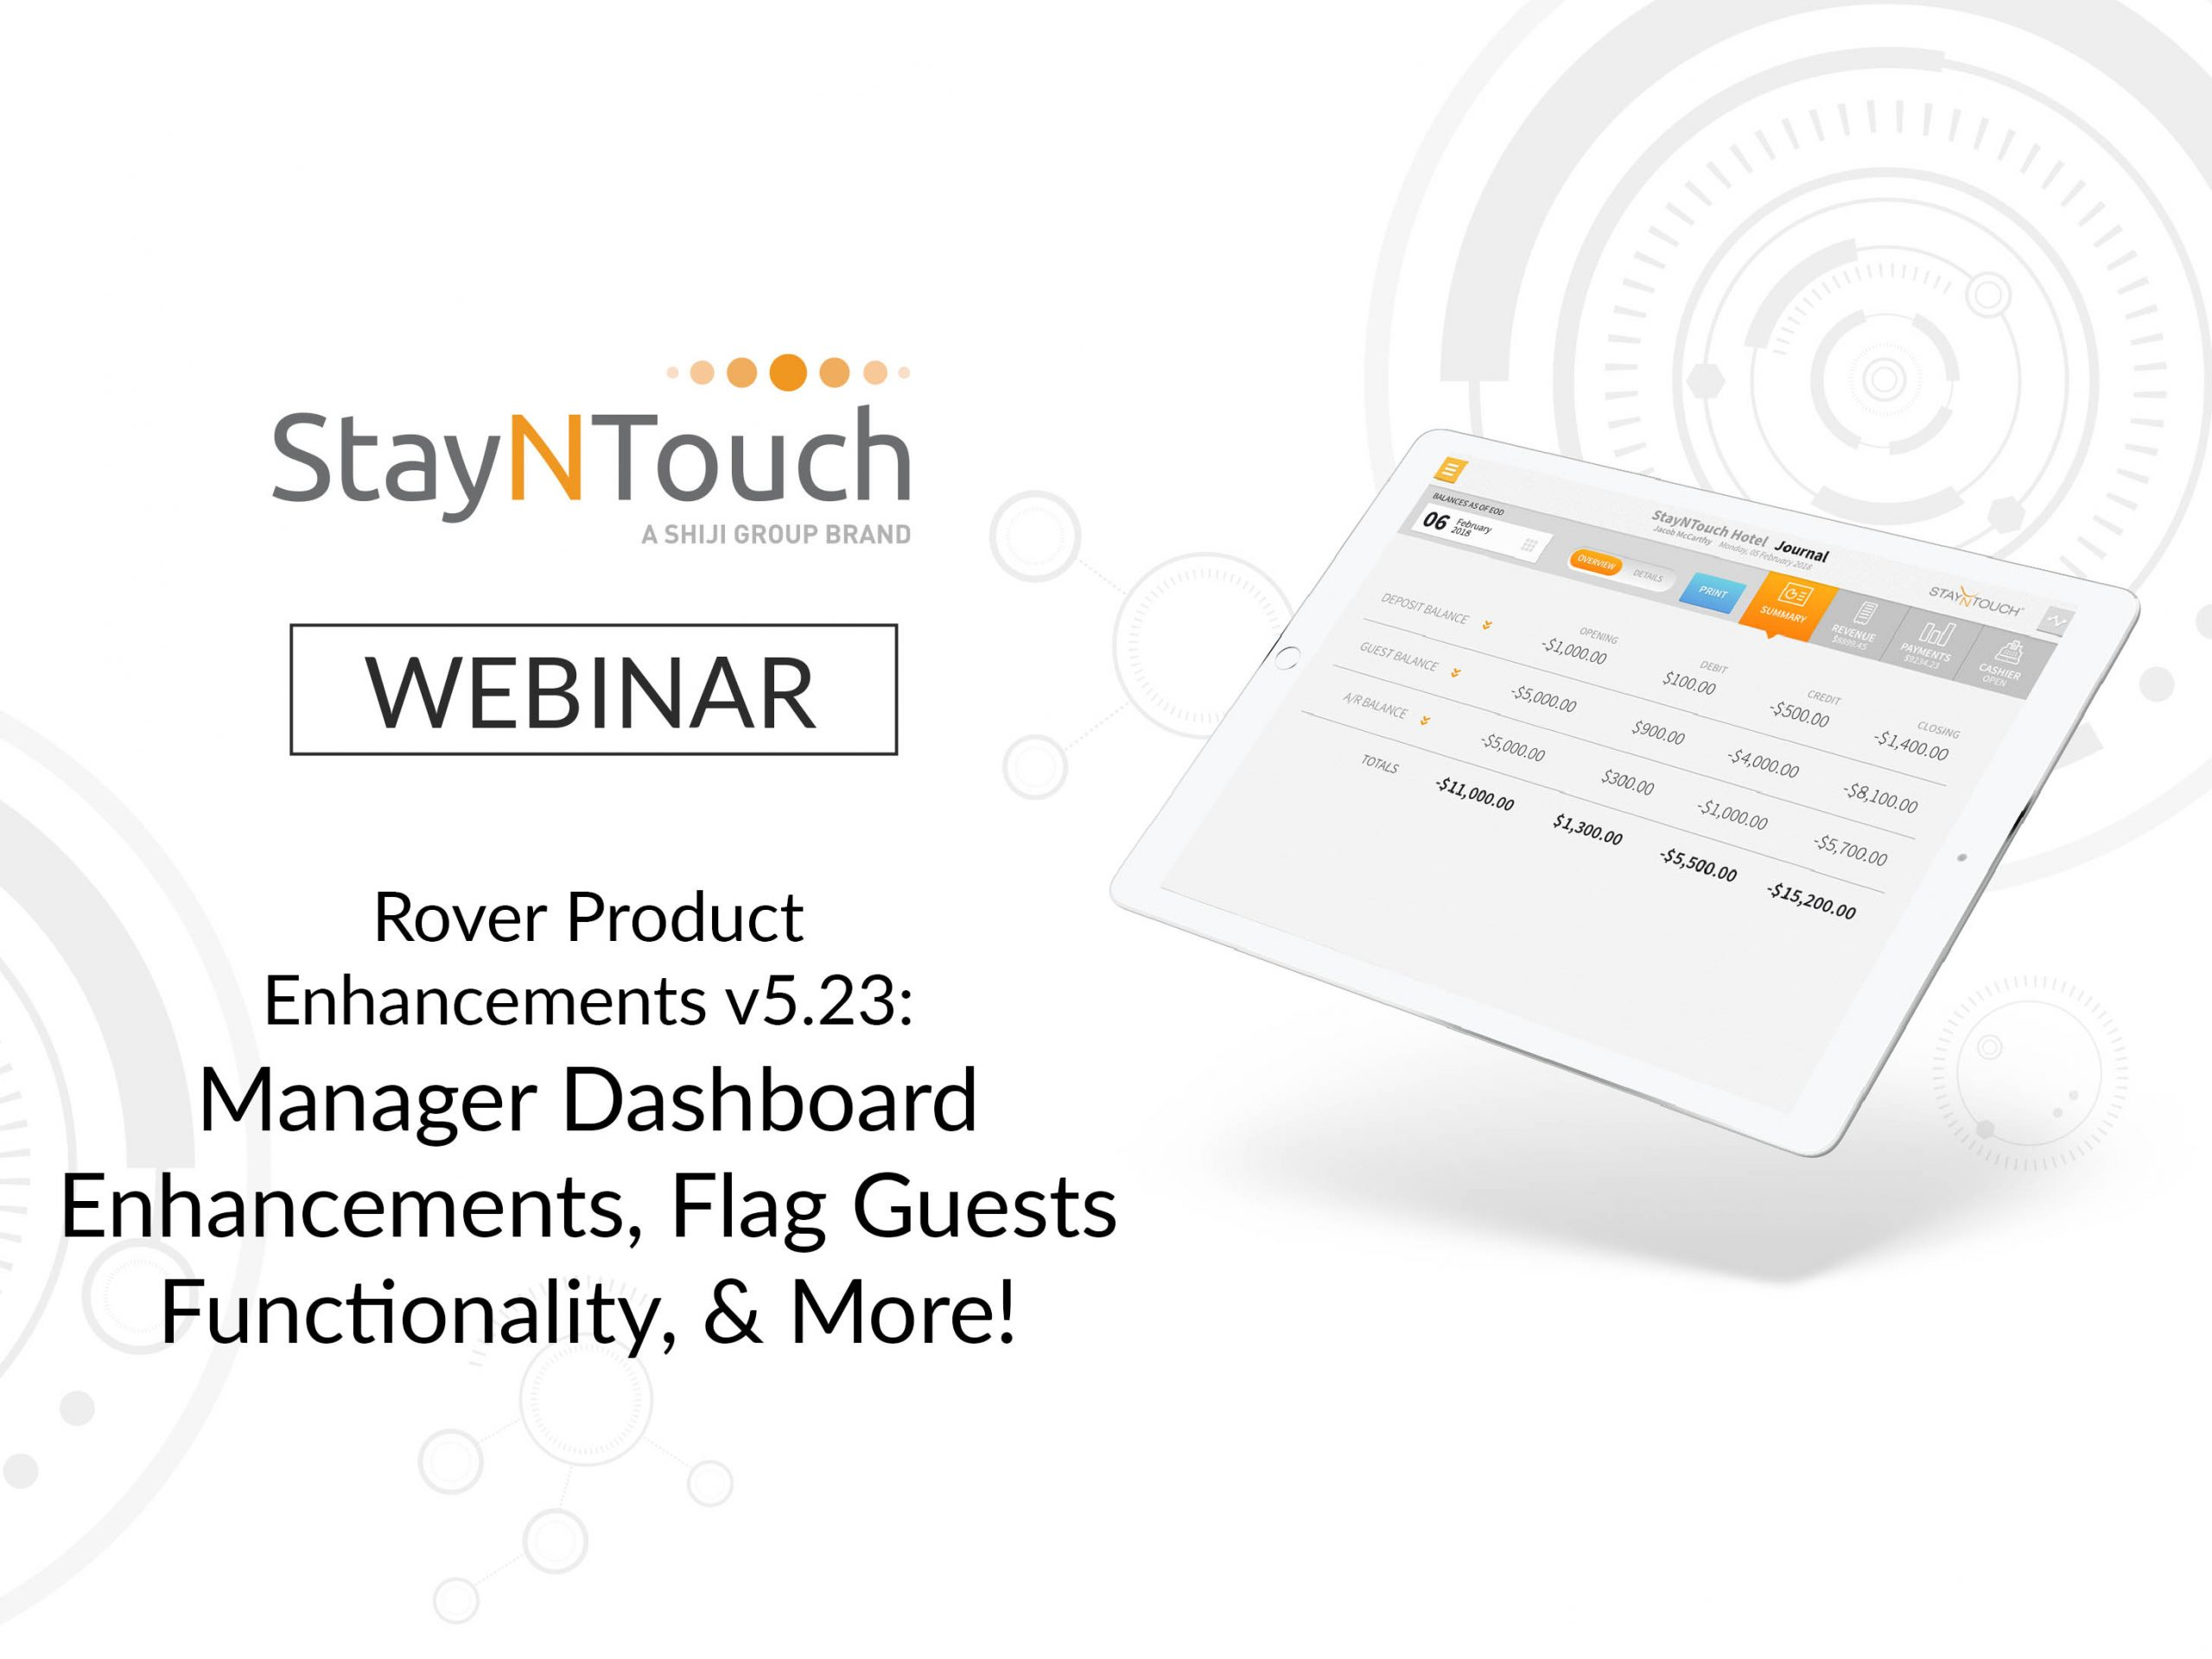 Rover Product Enhancements v5.23: Manager Dashboard Enhancements, Flag Guests Functionality, & More!